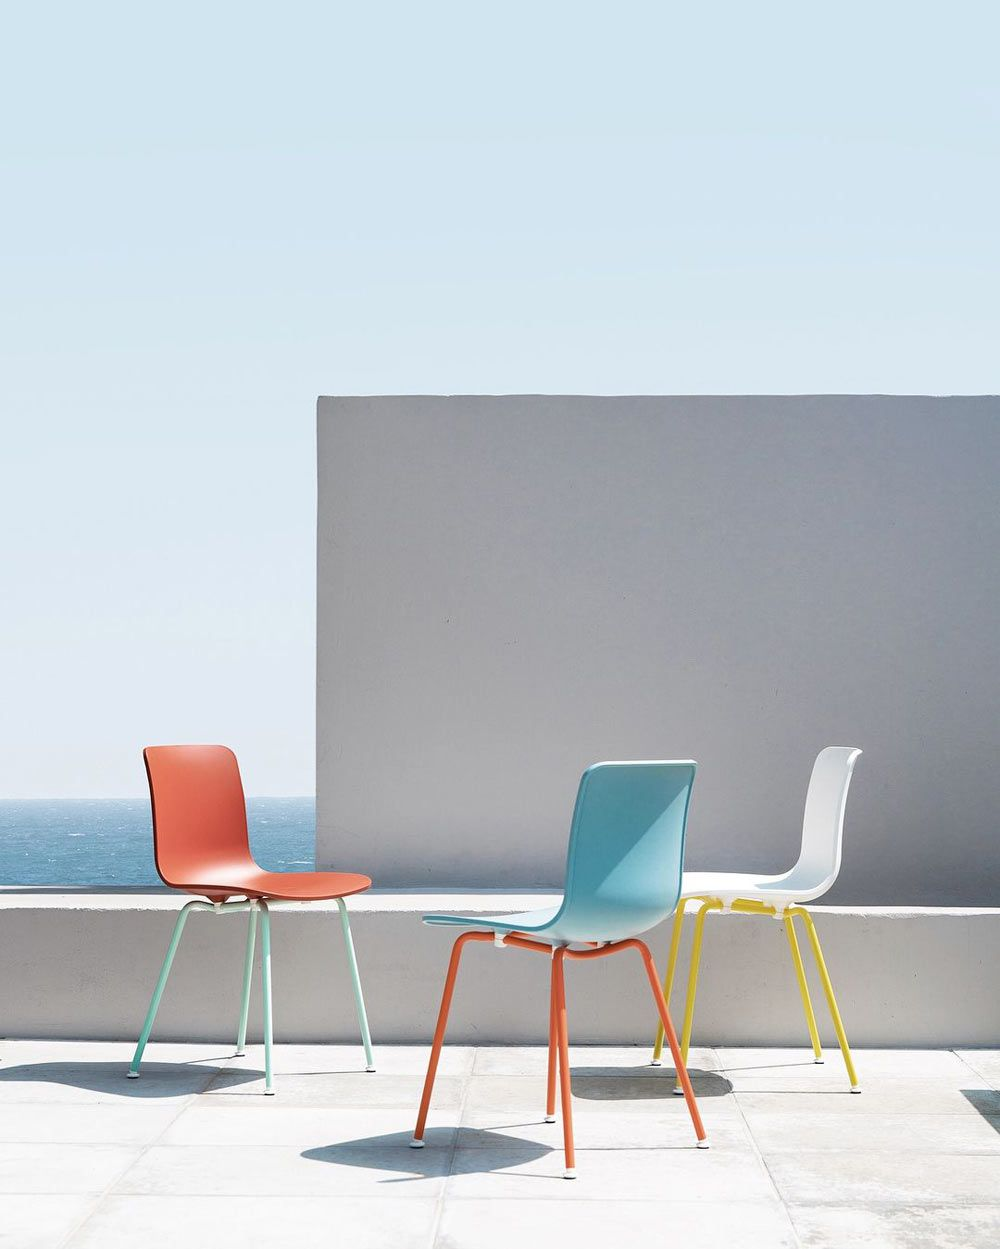 Onland Outdoor Furniture Refresh Your Patio Dining Set With Vitra S Hal Colour Tube Chairs